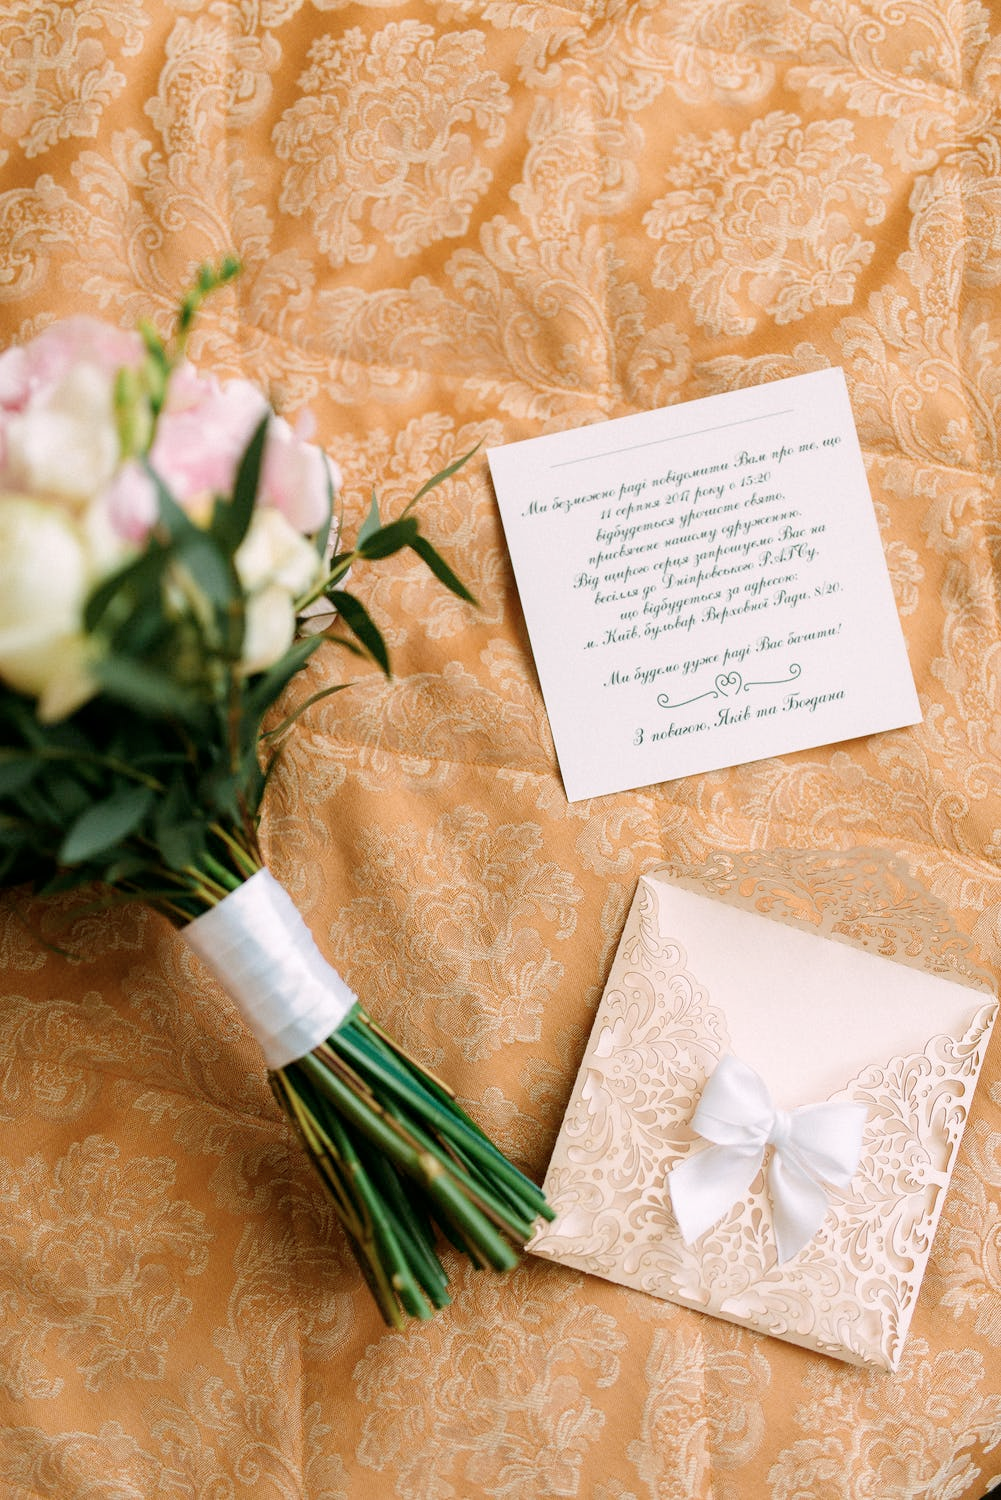 Online Stores and Resources for Your Wedding Invitations, Gifts, and More